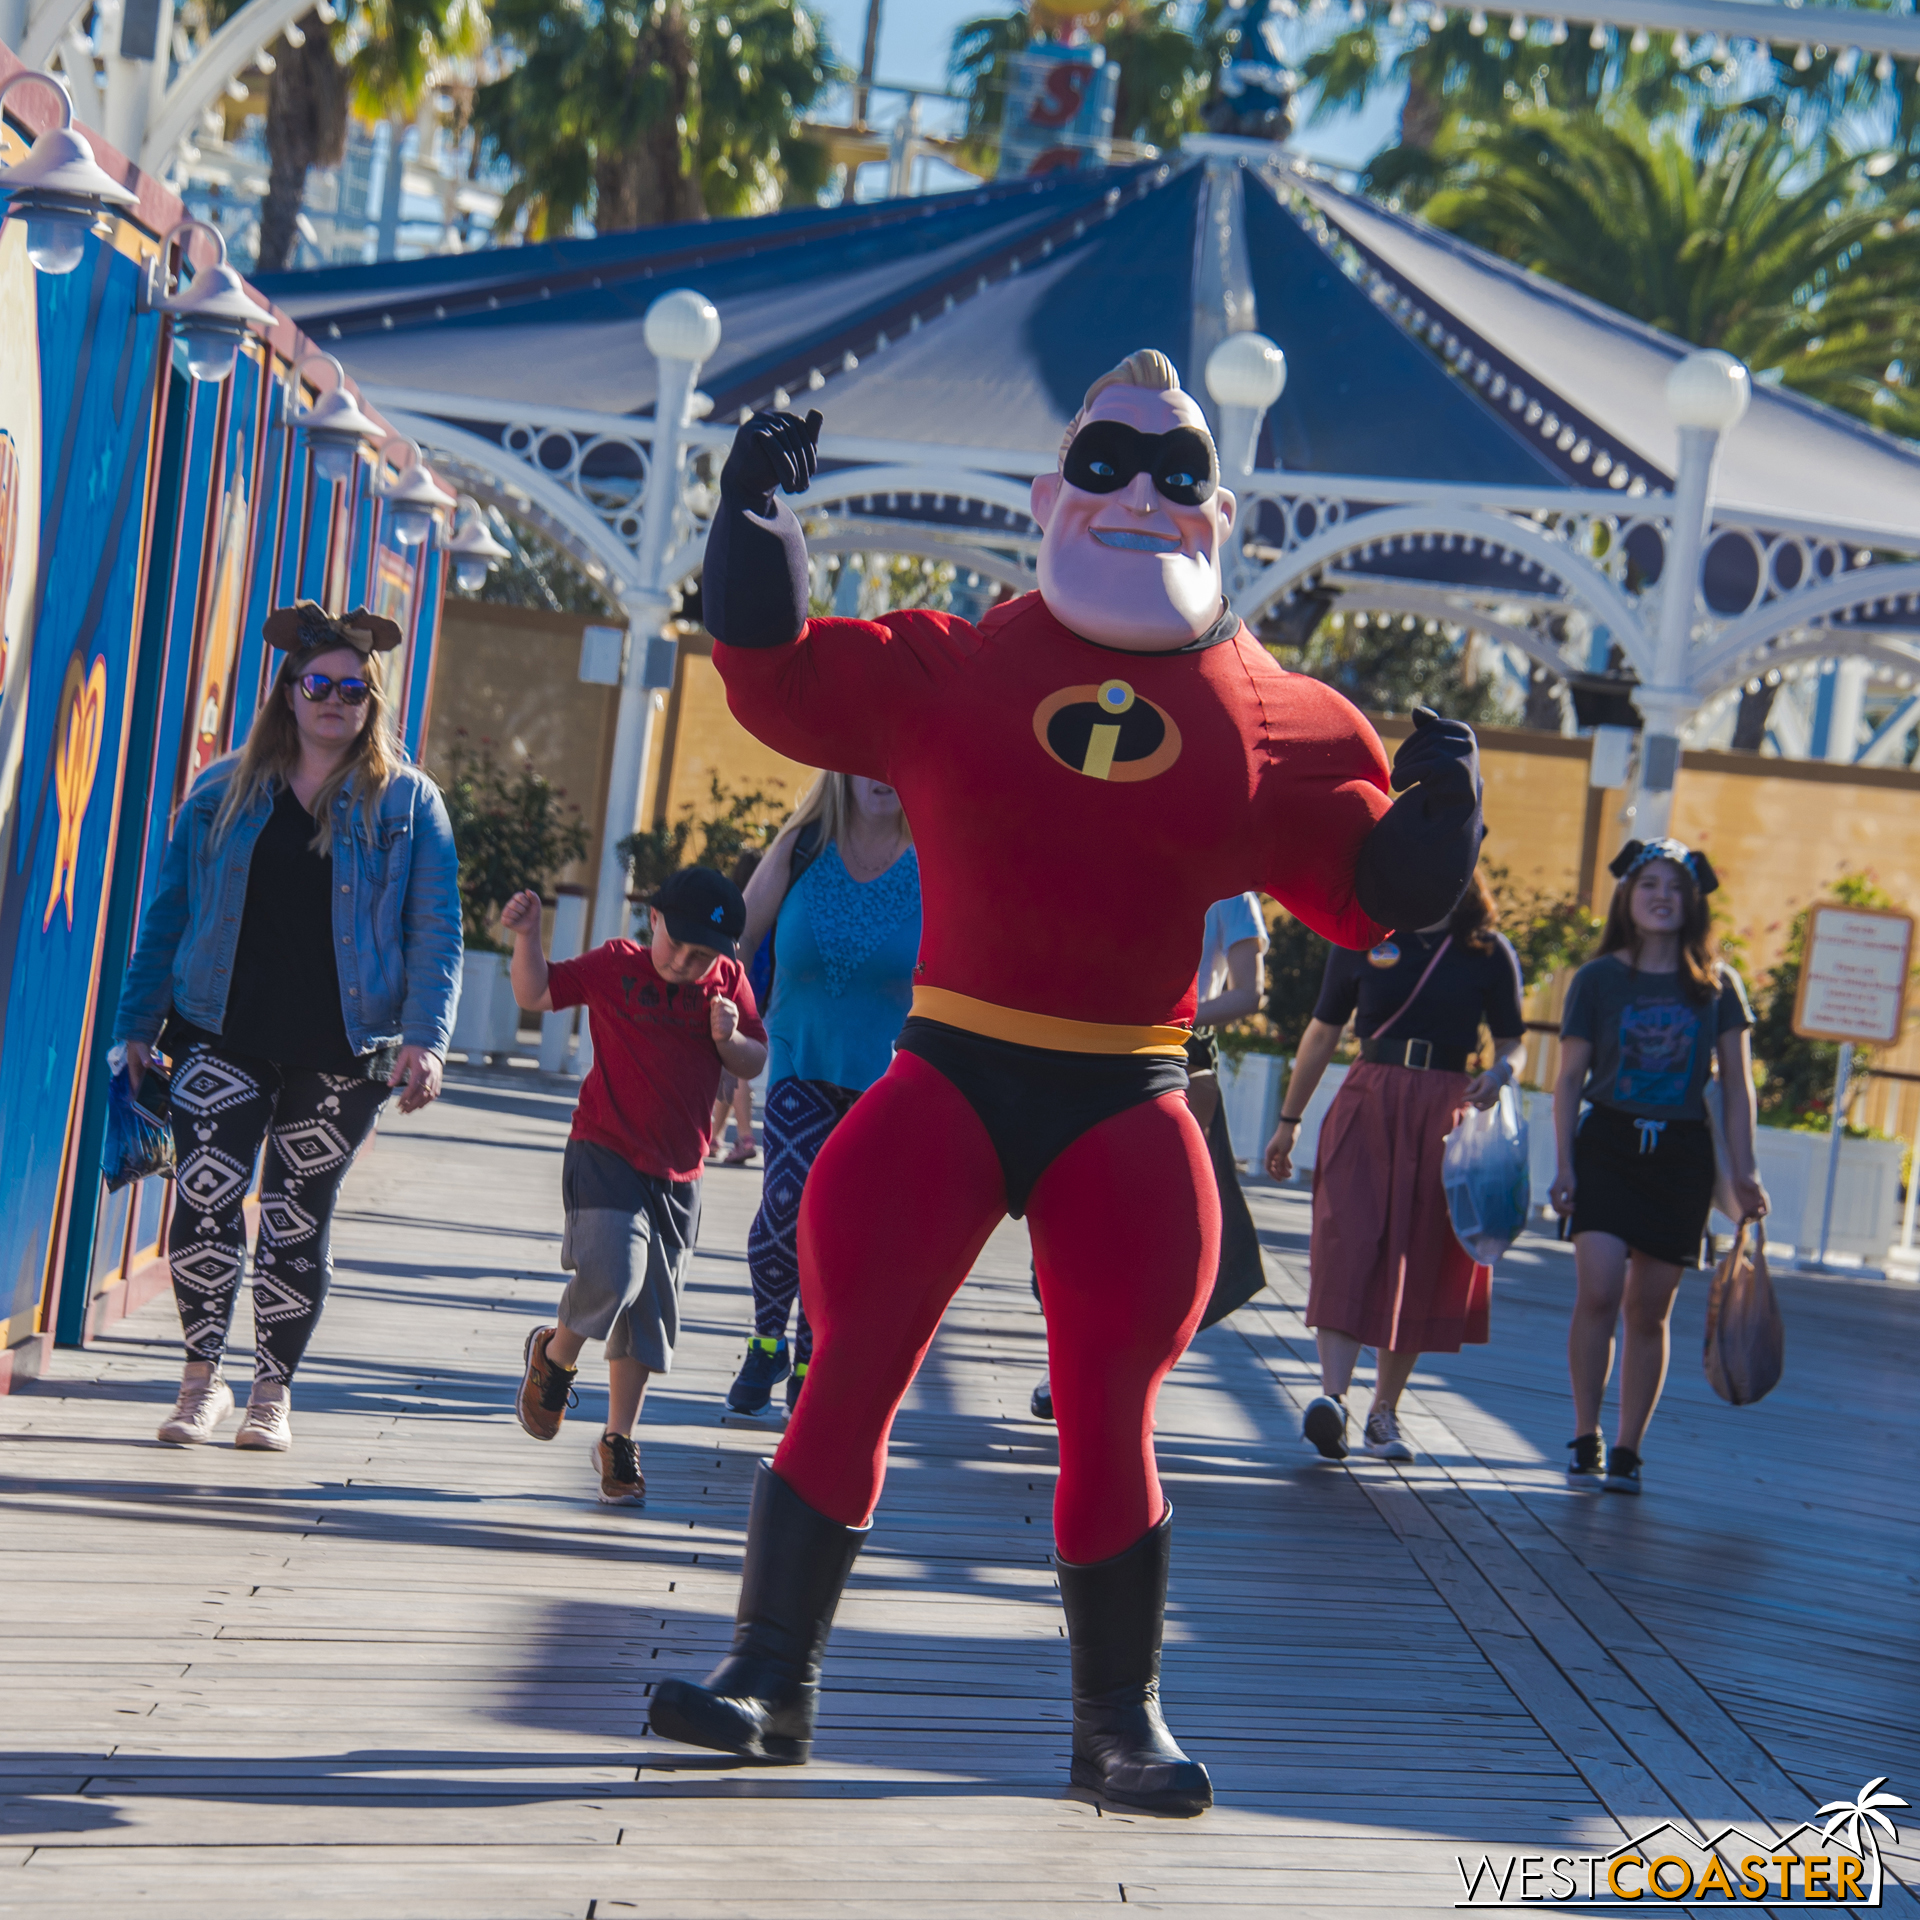 Perhaps he appreciates the synergy, since he'll be in a new movie this summer that opens right as Pixar Pier debuts.